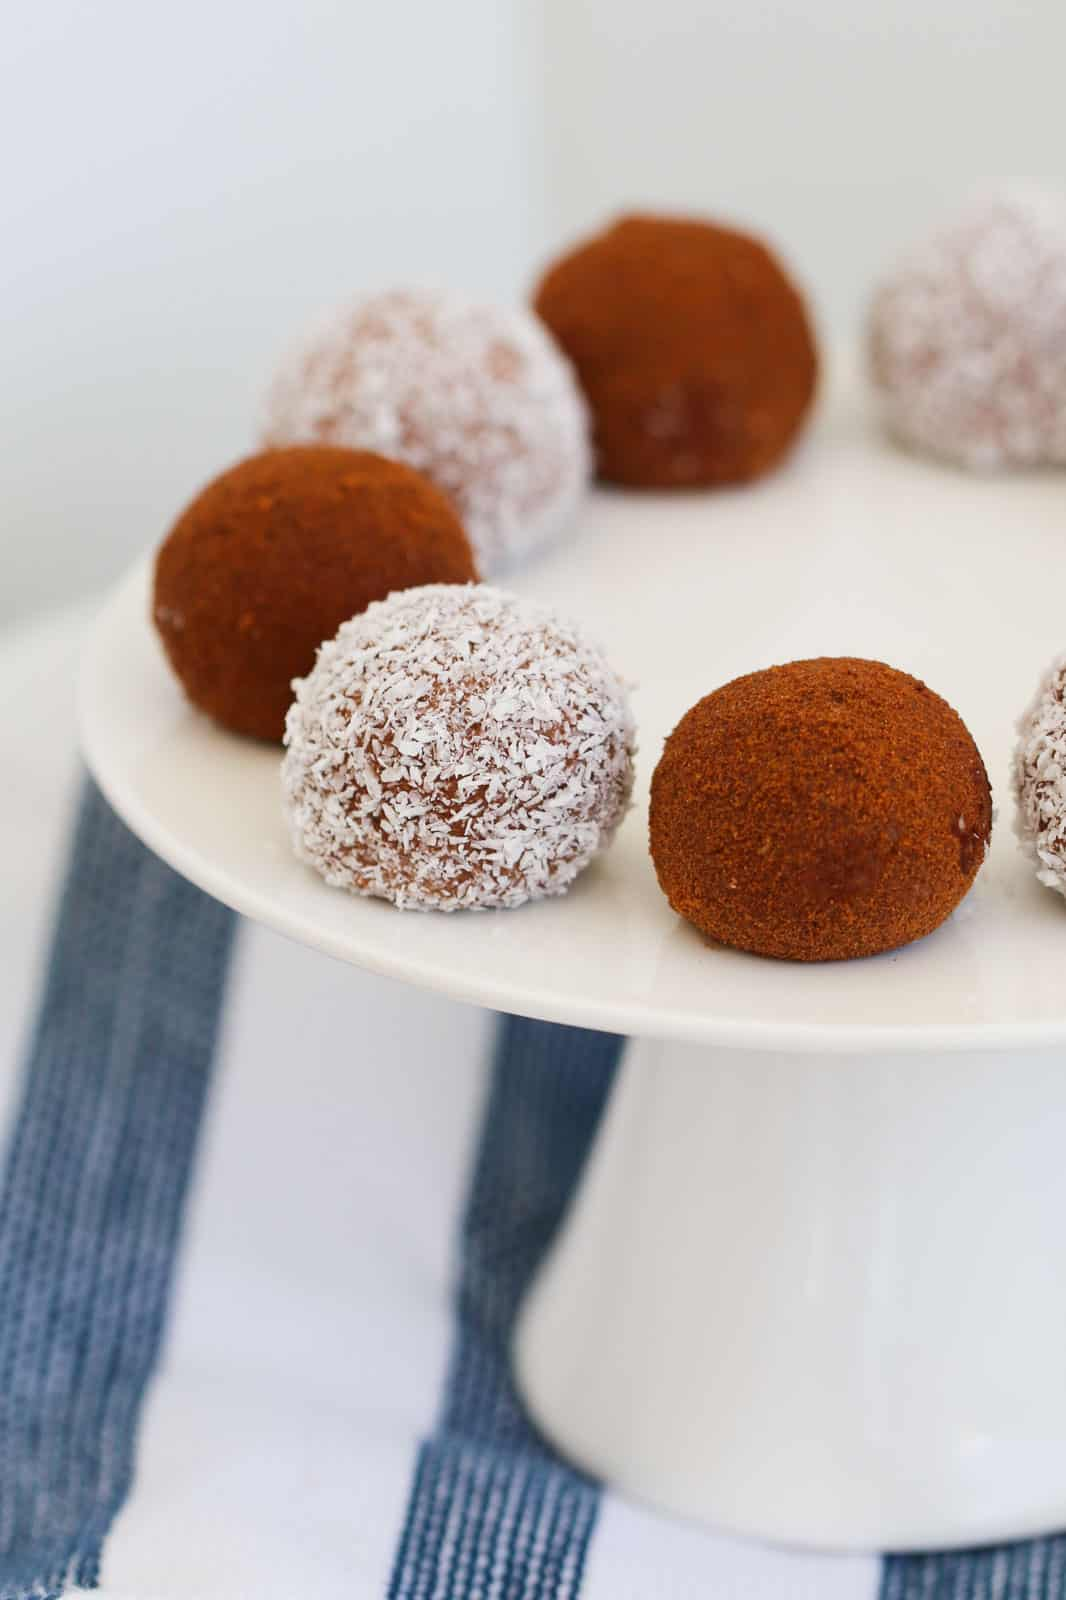 Sweetened condensed milk and Tim Tam balls on a plate.